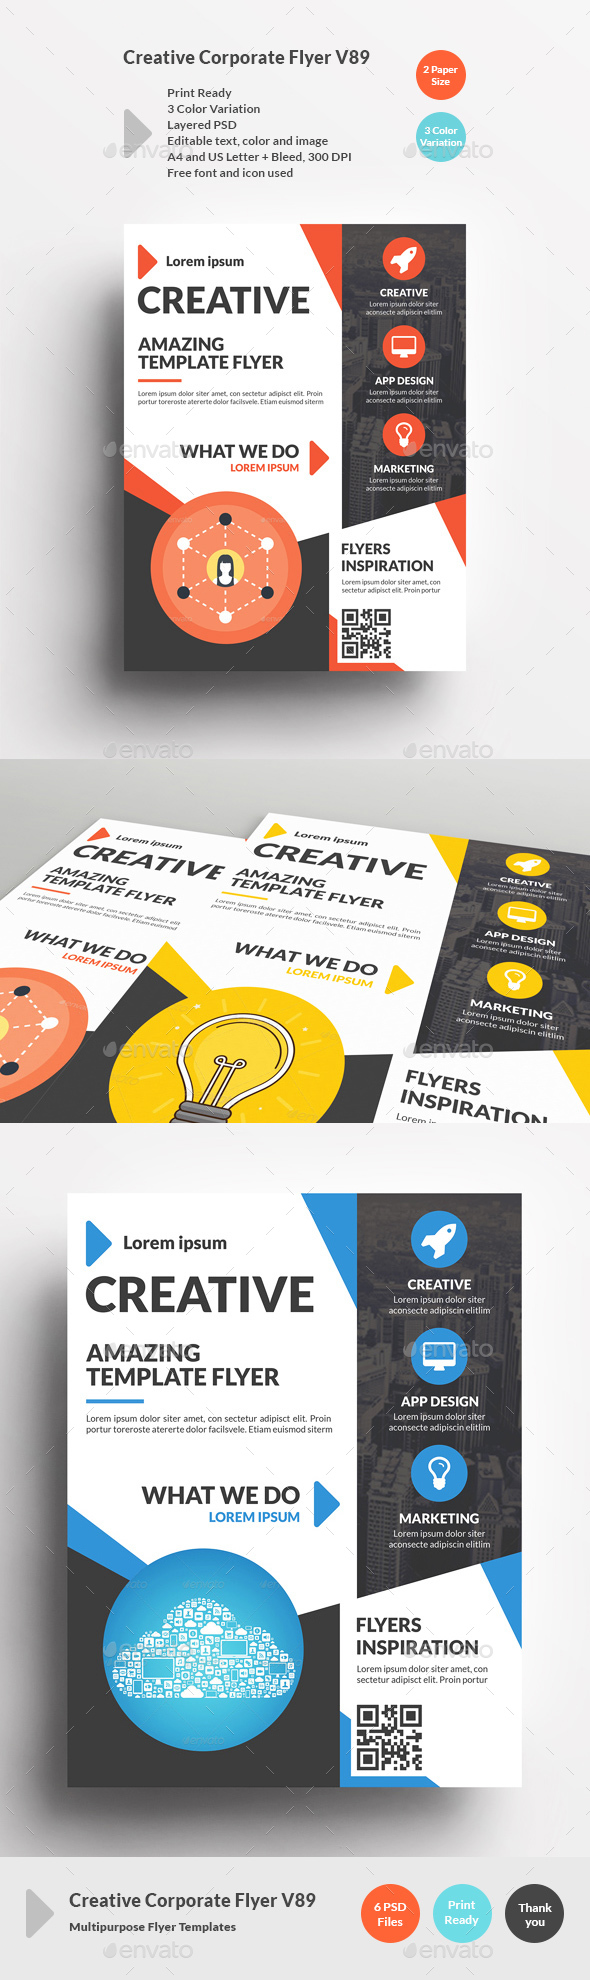 Creative Corporate Flyer V89 - Corporate Flyers